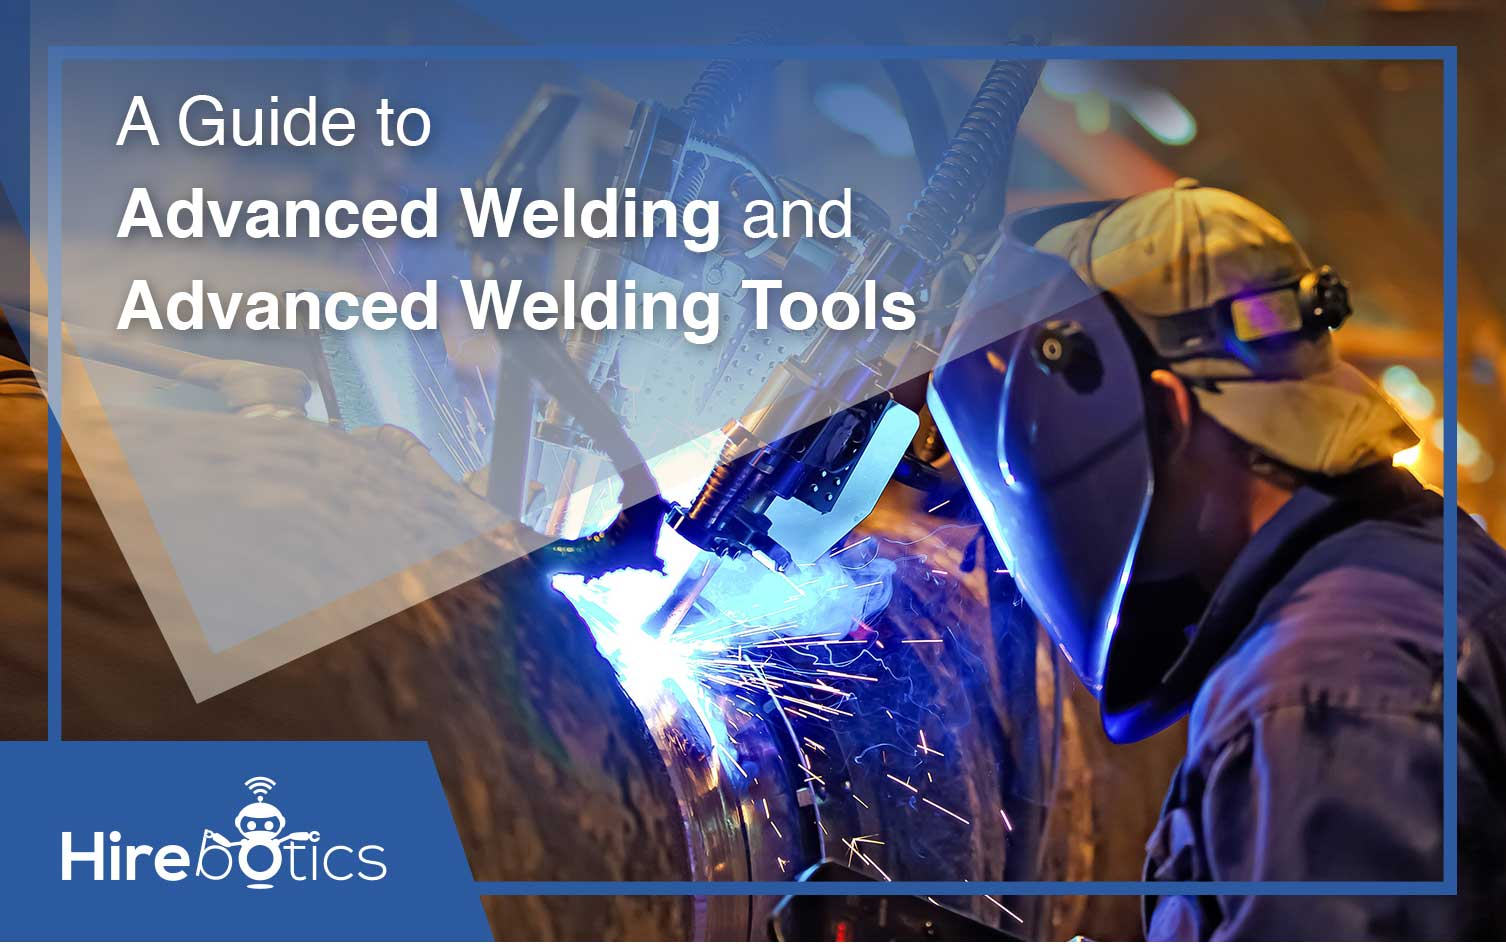 A Guide to Advanced Welding and Advanced Welding Tools